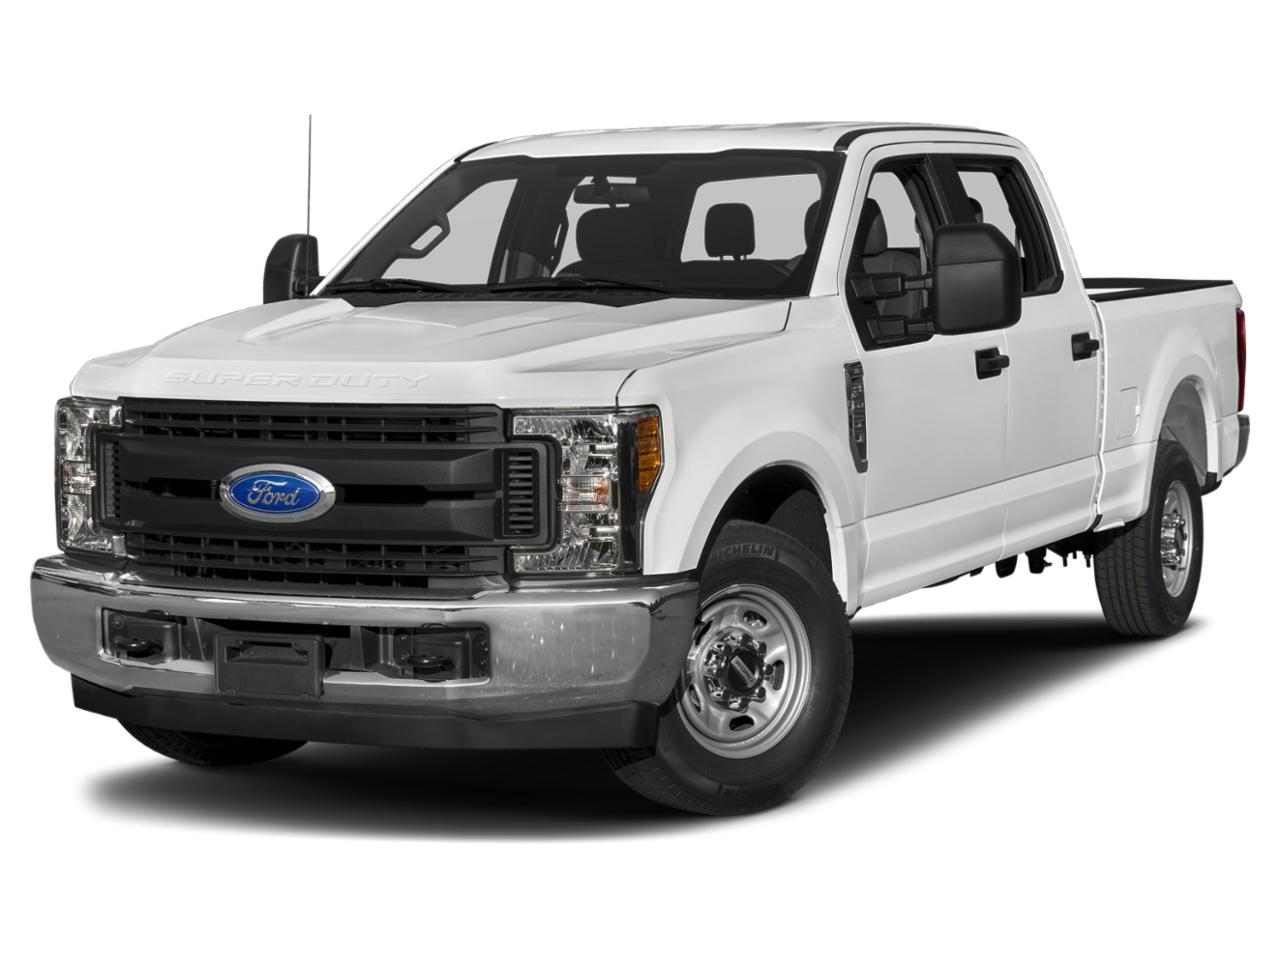 2019 Ford Super Duty F-250 SRW Vehicle Photo in San Antonio, TX 78257